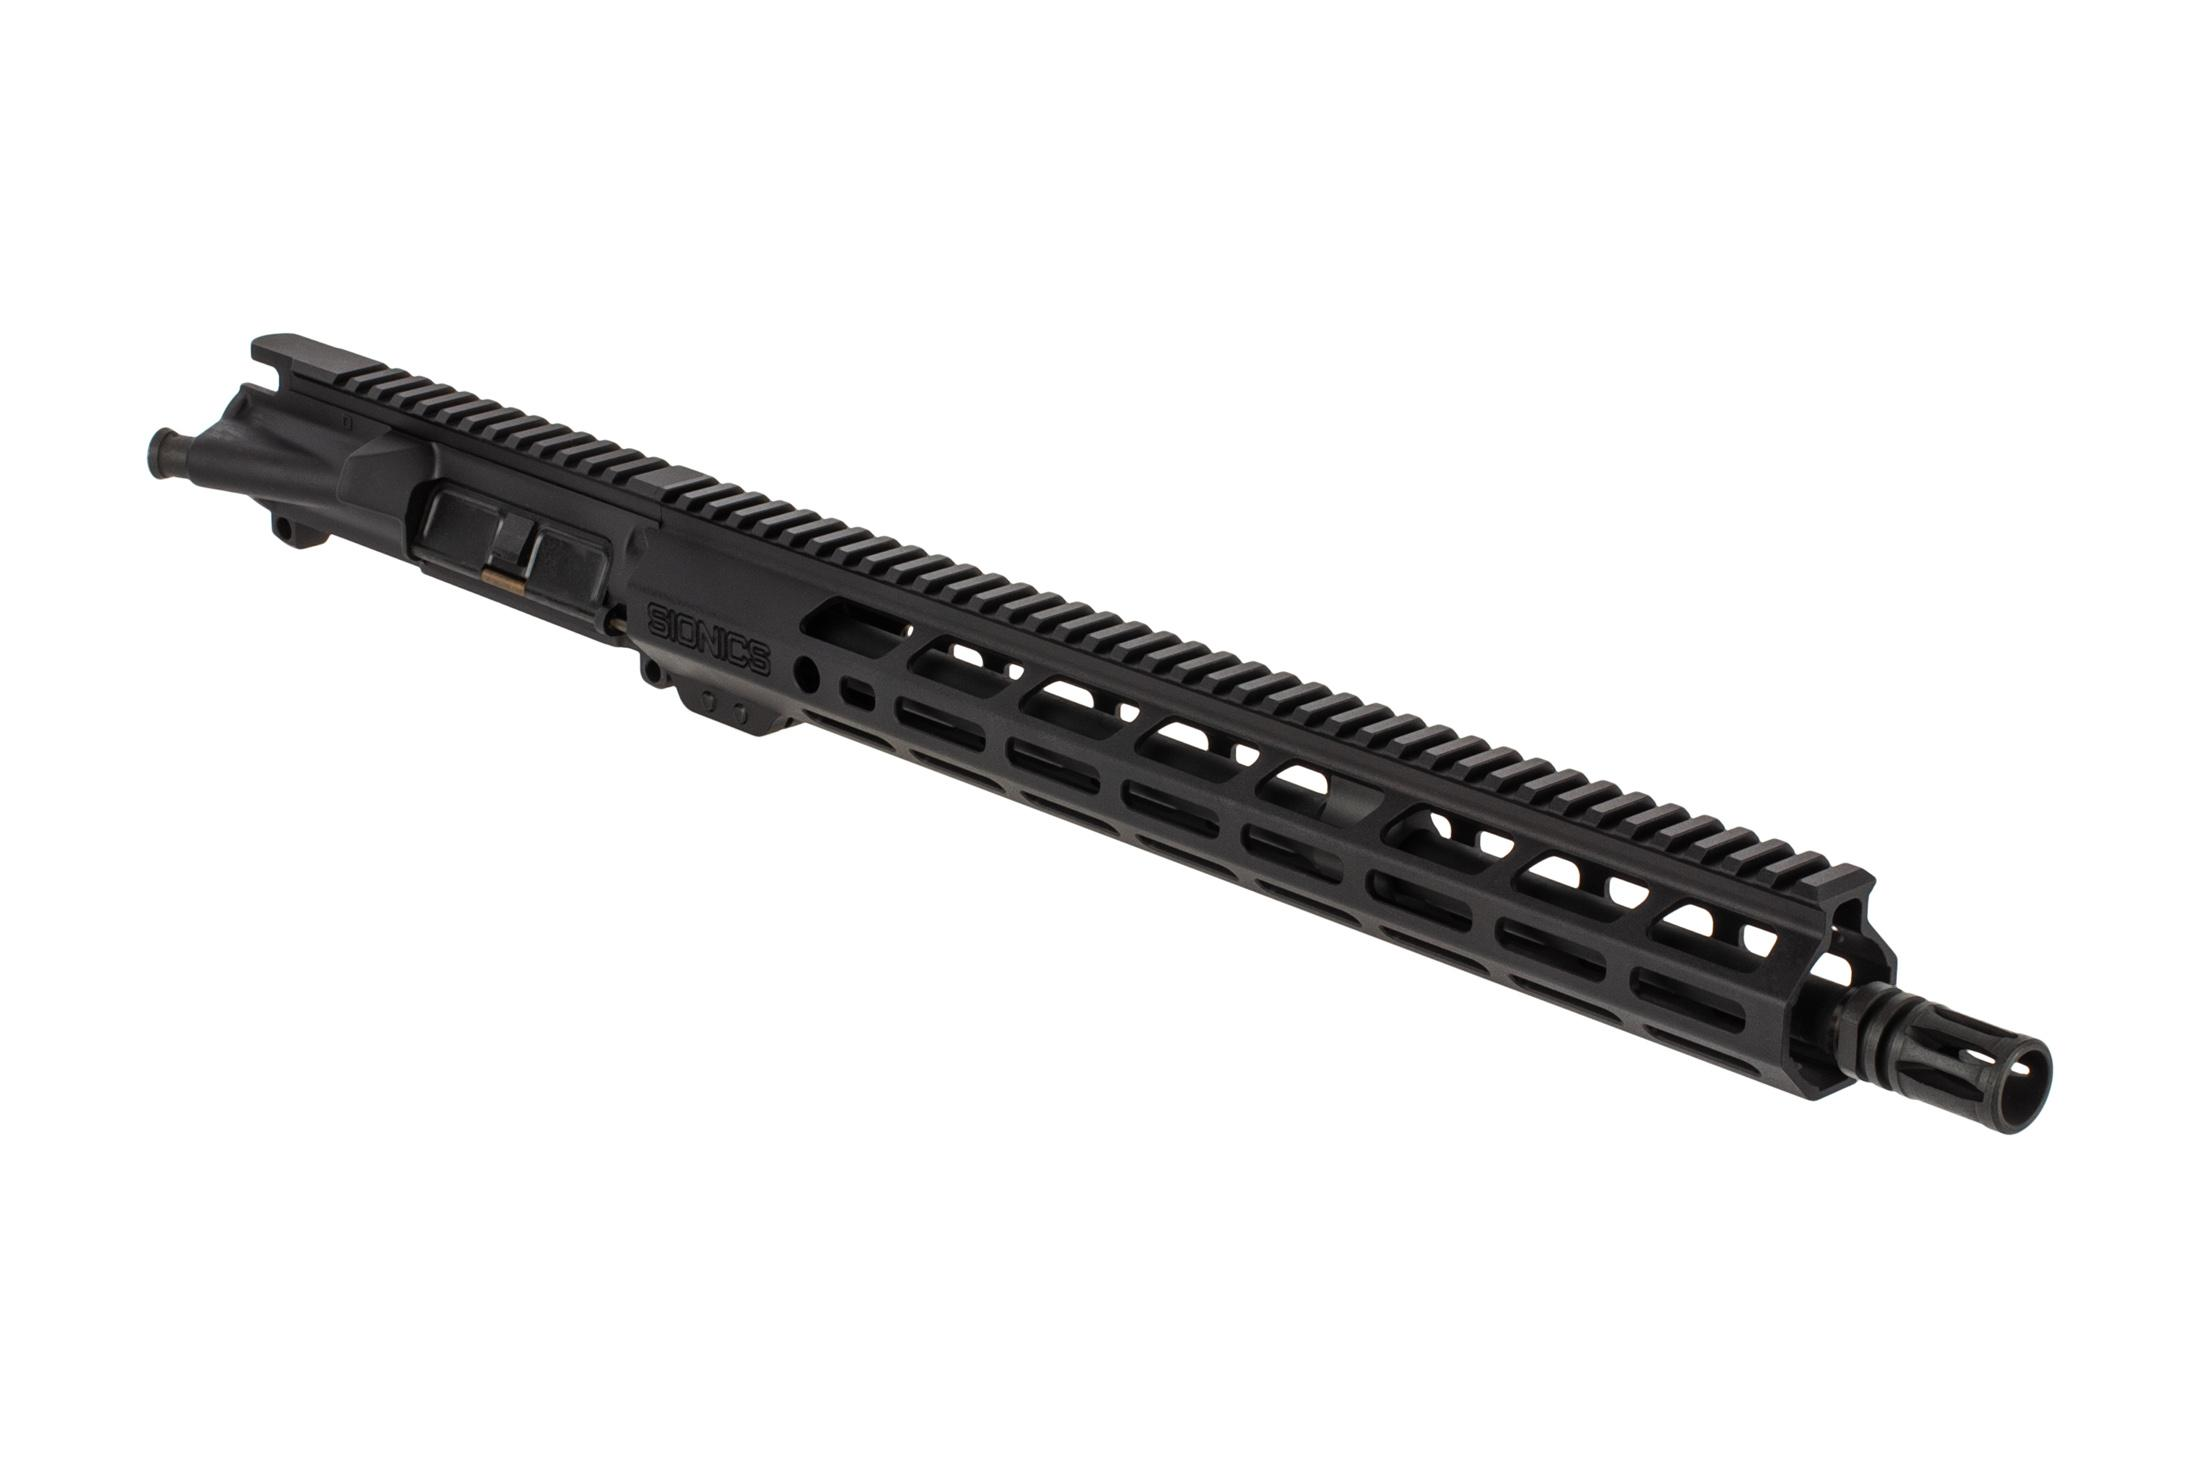 Sionics Patrol III Lightweight AR15 barreled upper receiver group features a 16 inch barrel